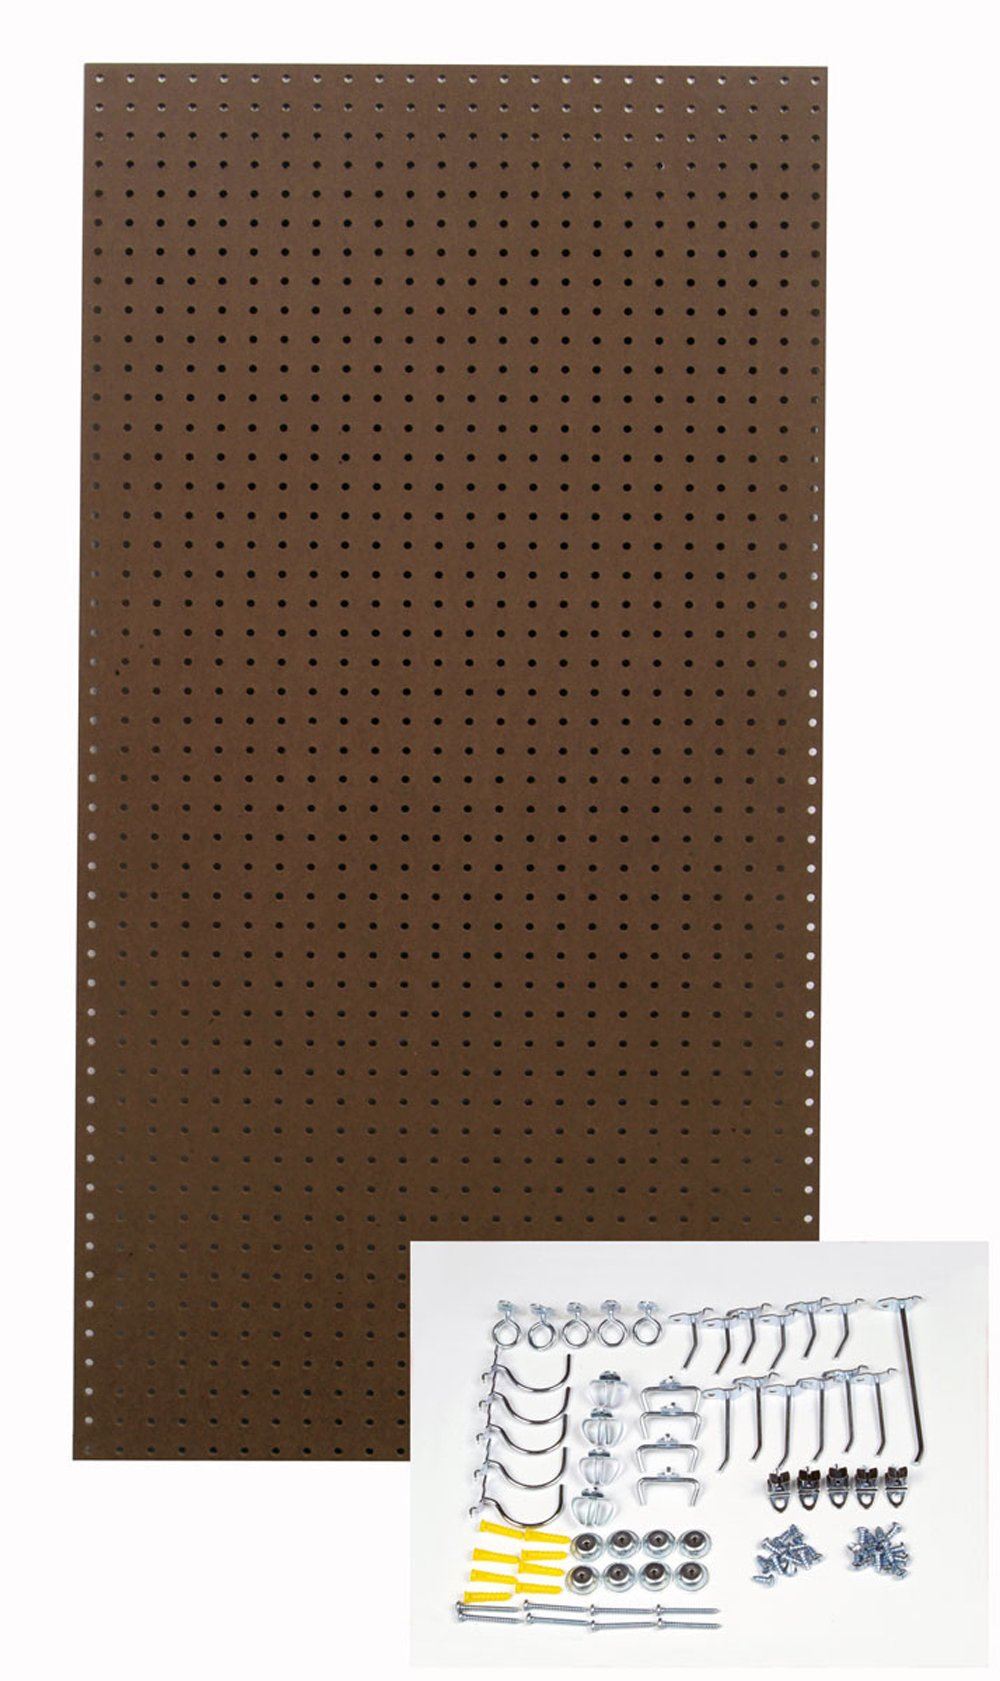 Triton Products TPB-36BRH-Kit 24-Inch W x 48-Inch H Heavy Duty Commercial Grade Tempered Round Hole Pegboards with Locking Hook Assortment, Brown